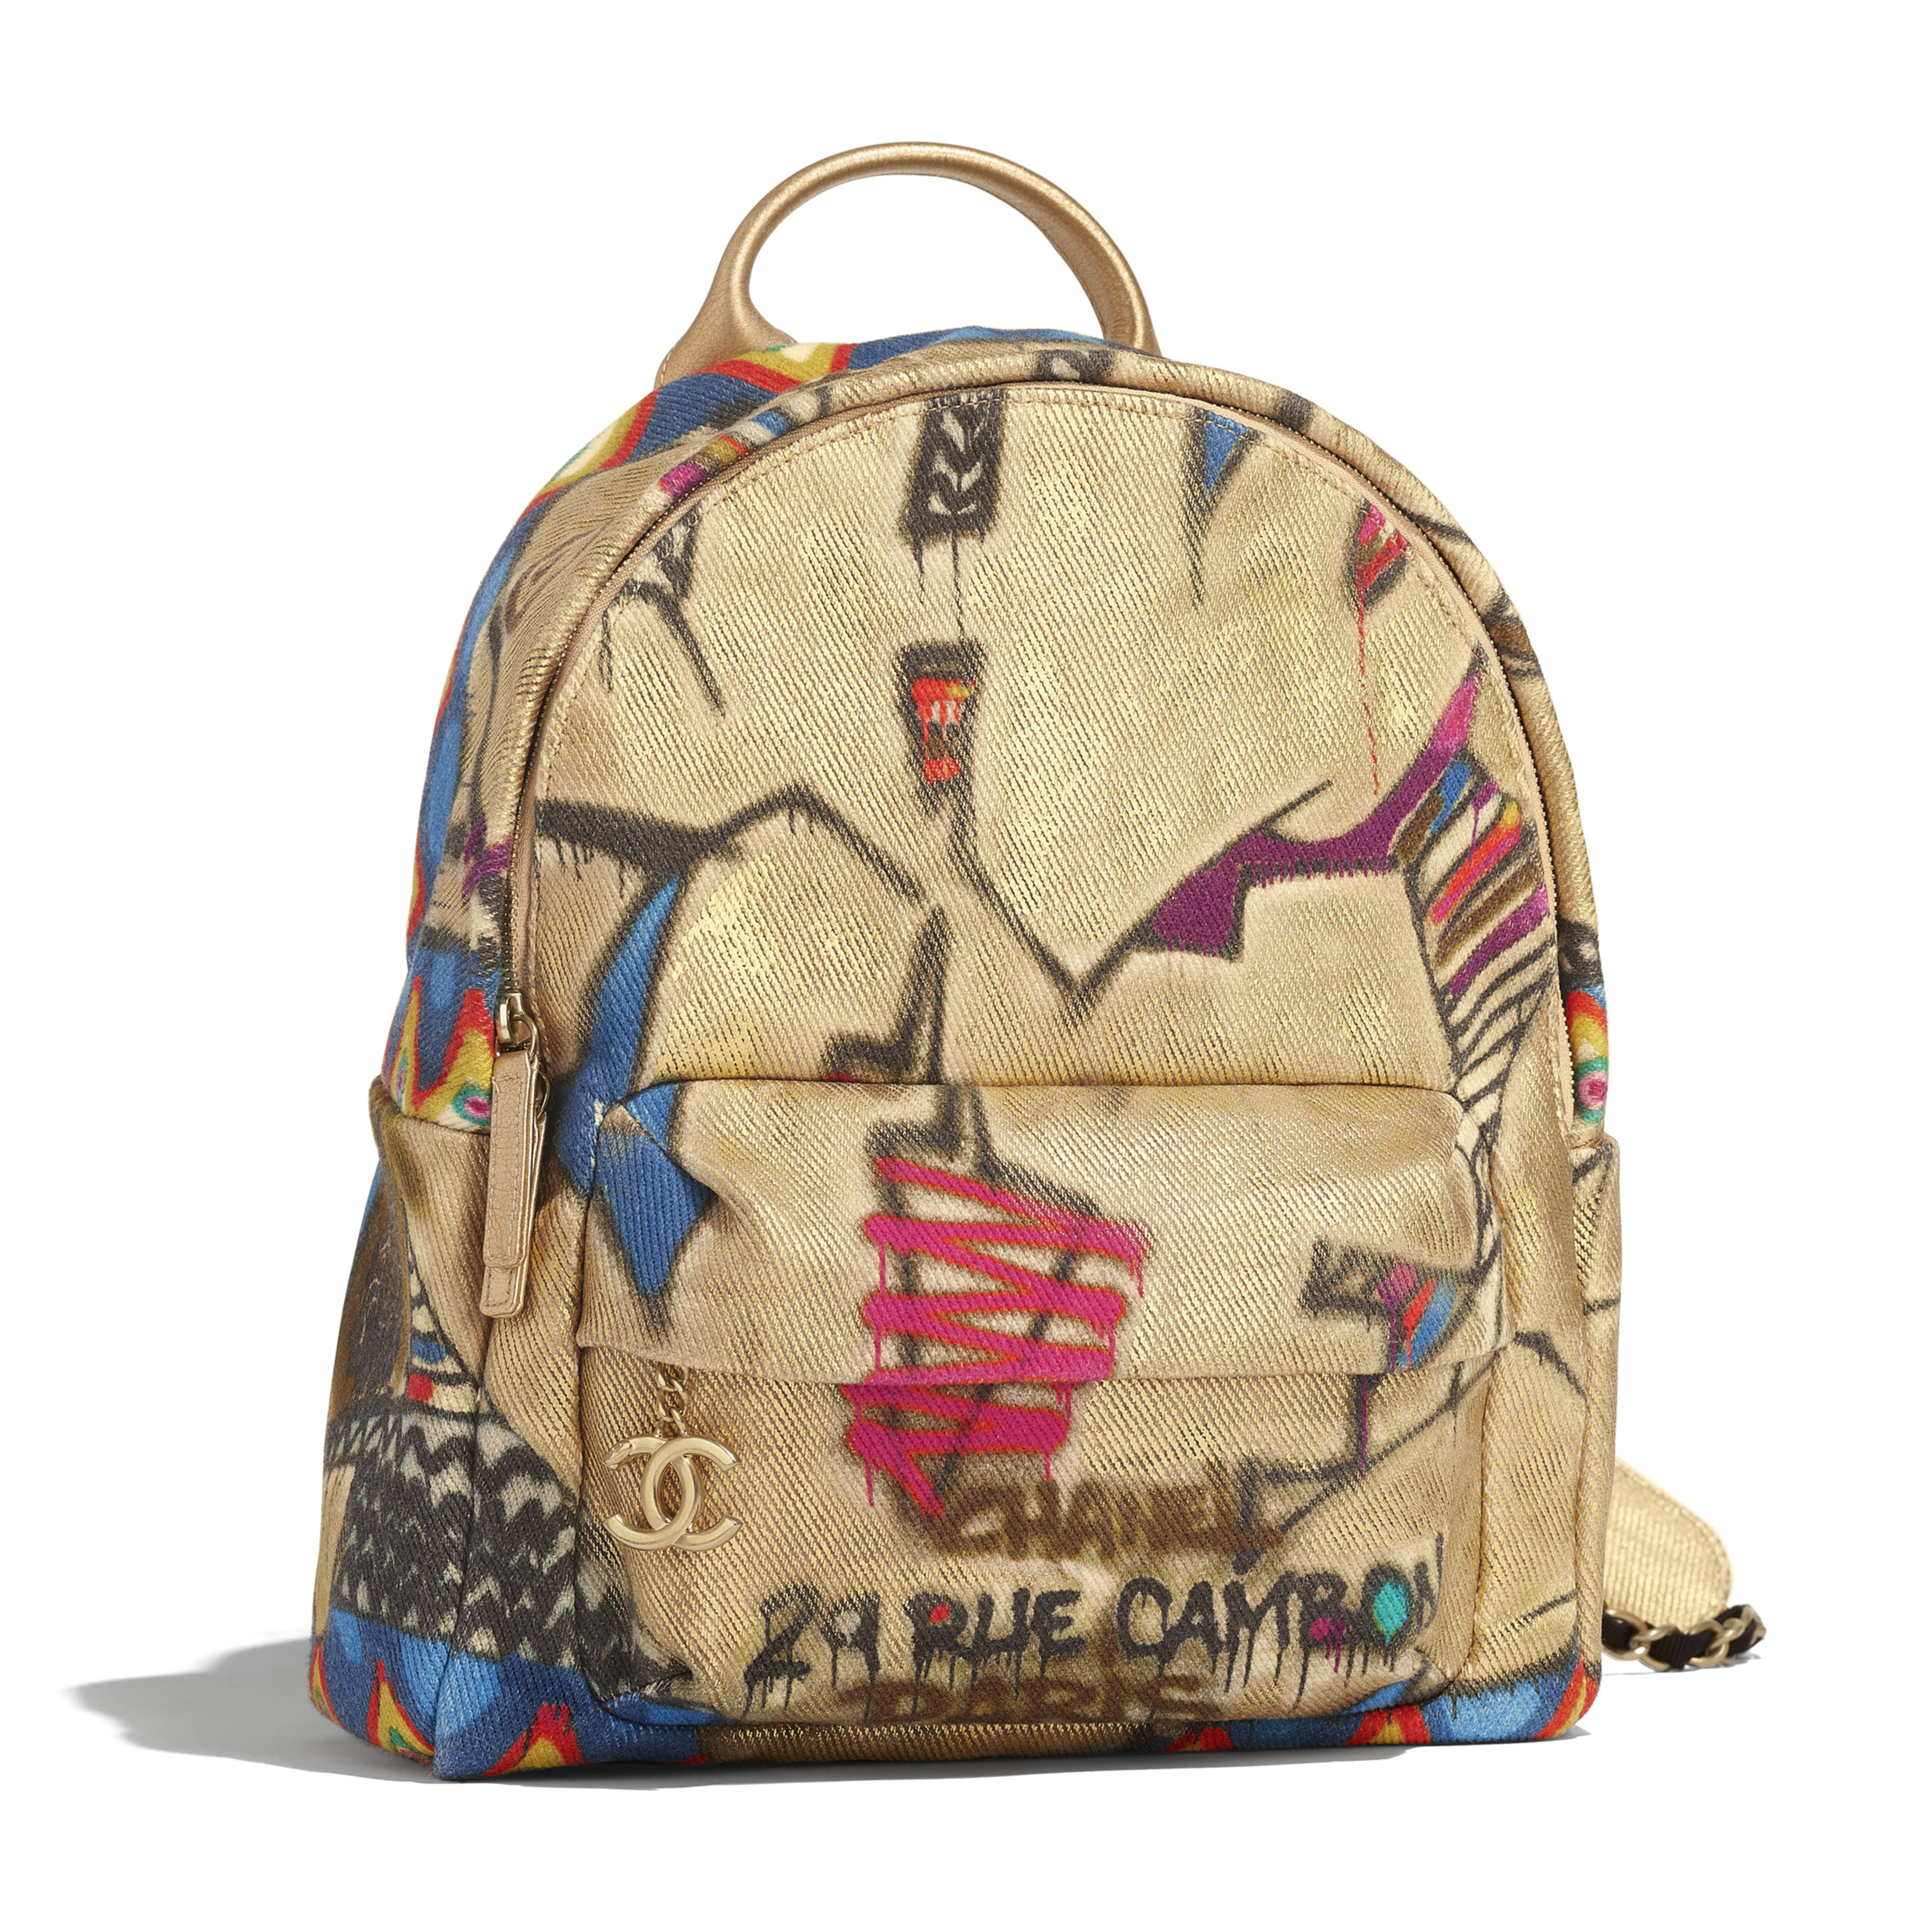 Backpack - Multicolor - Calfskin, Cotton & Gold-Tone Metal - Default view - see full sized version